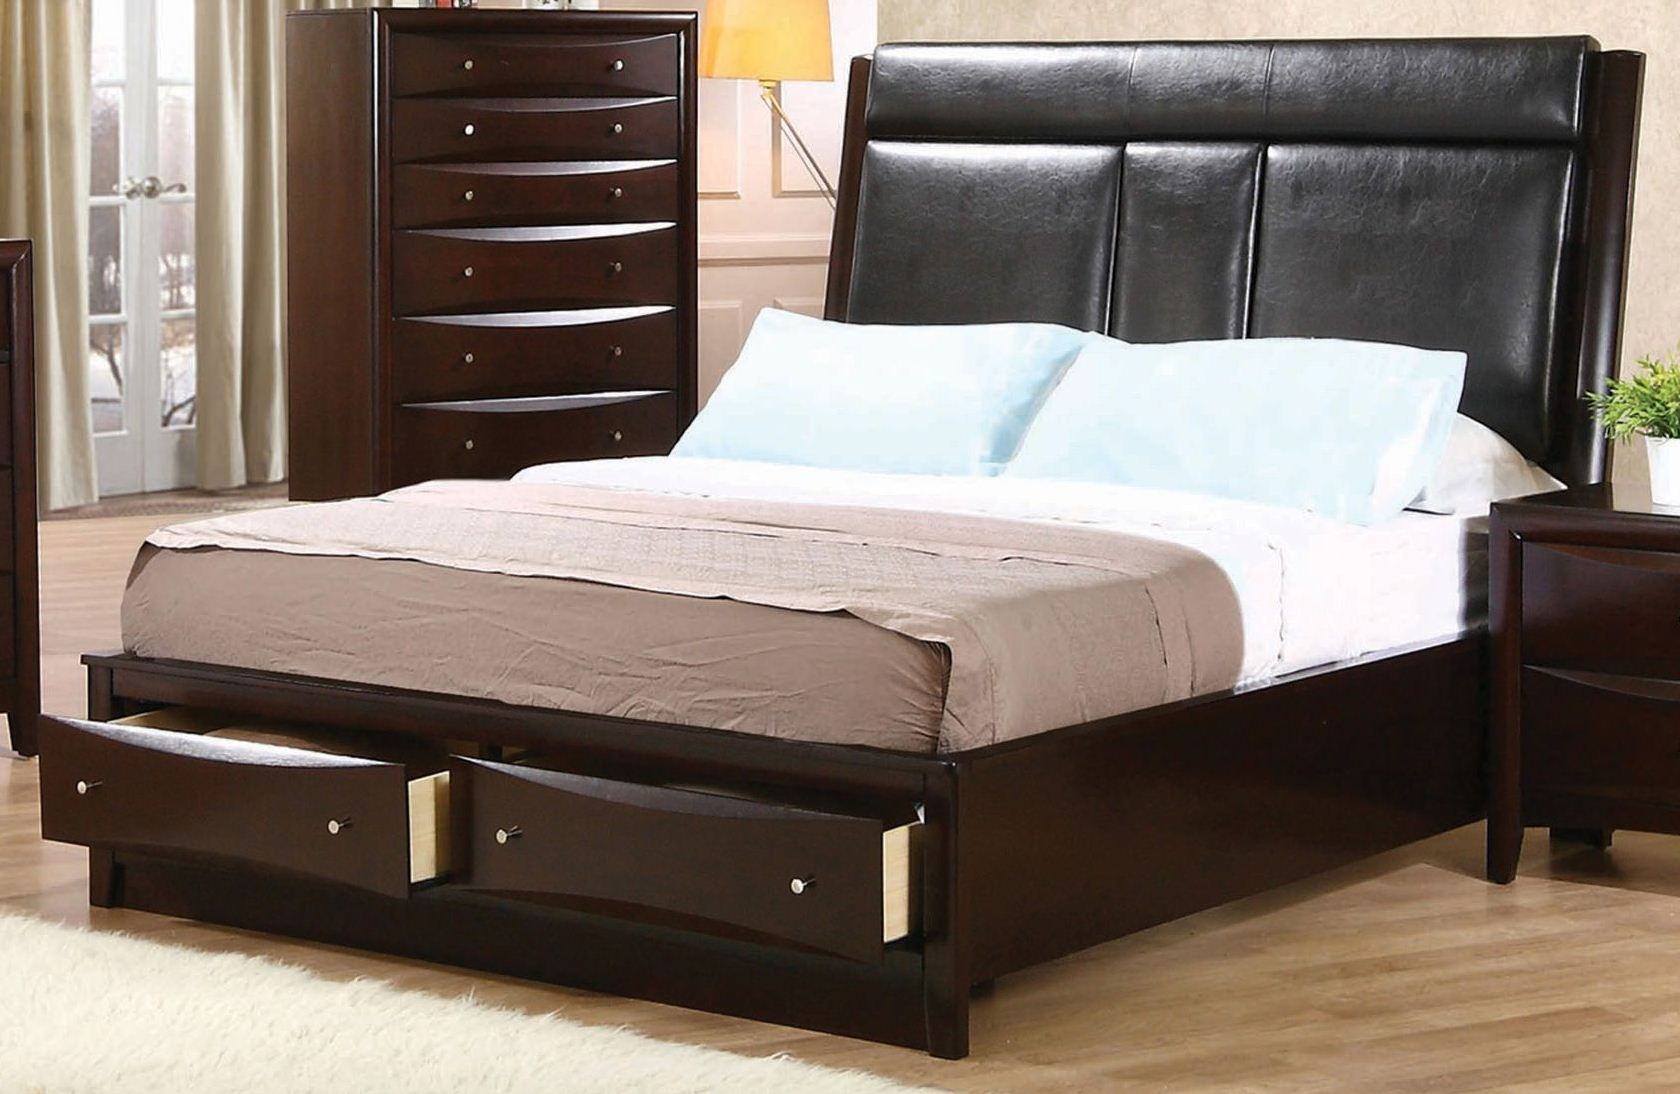 phoenix queen upholstered storage platform bed from coaster 200419q coleman furniture. Black Bedroom Furniture Sets. Home Design Ideas